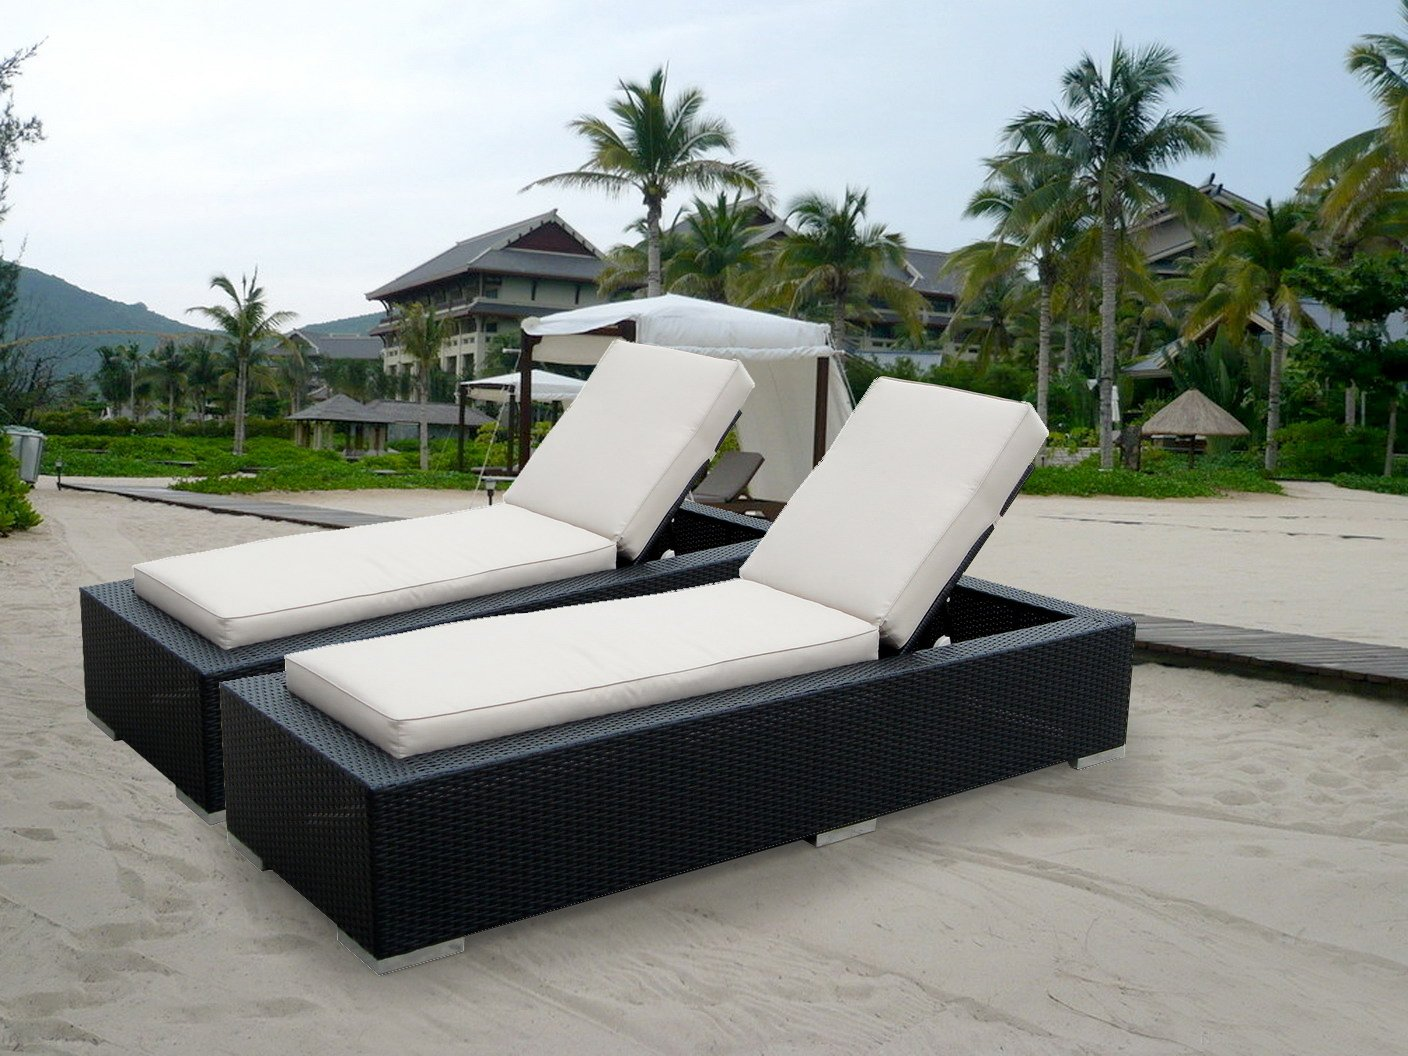 Lounge sofa rattan  Amazon.com : Ohana 2-Piece Outdoor Wicker Patio Furniture Chaise ...